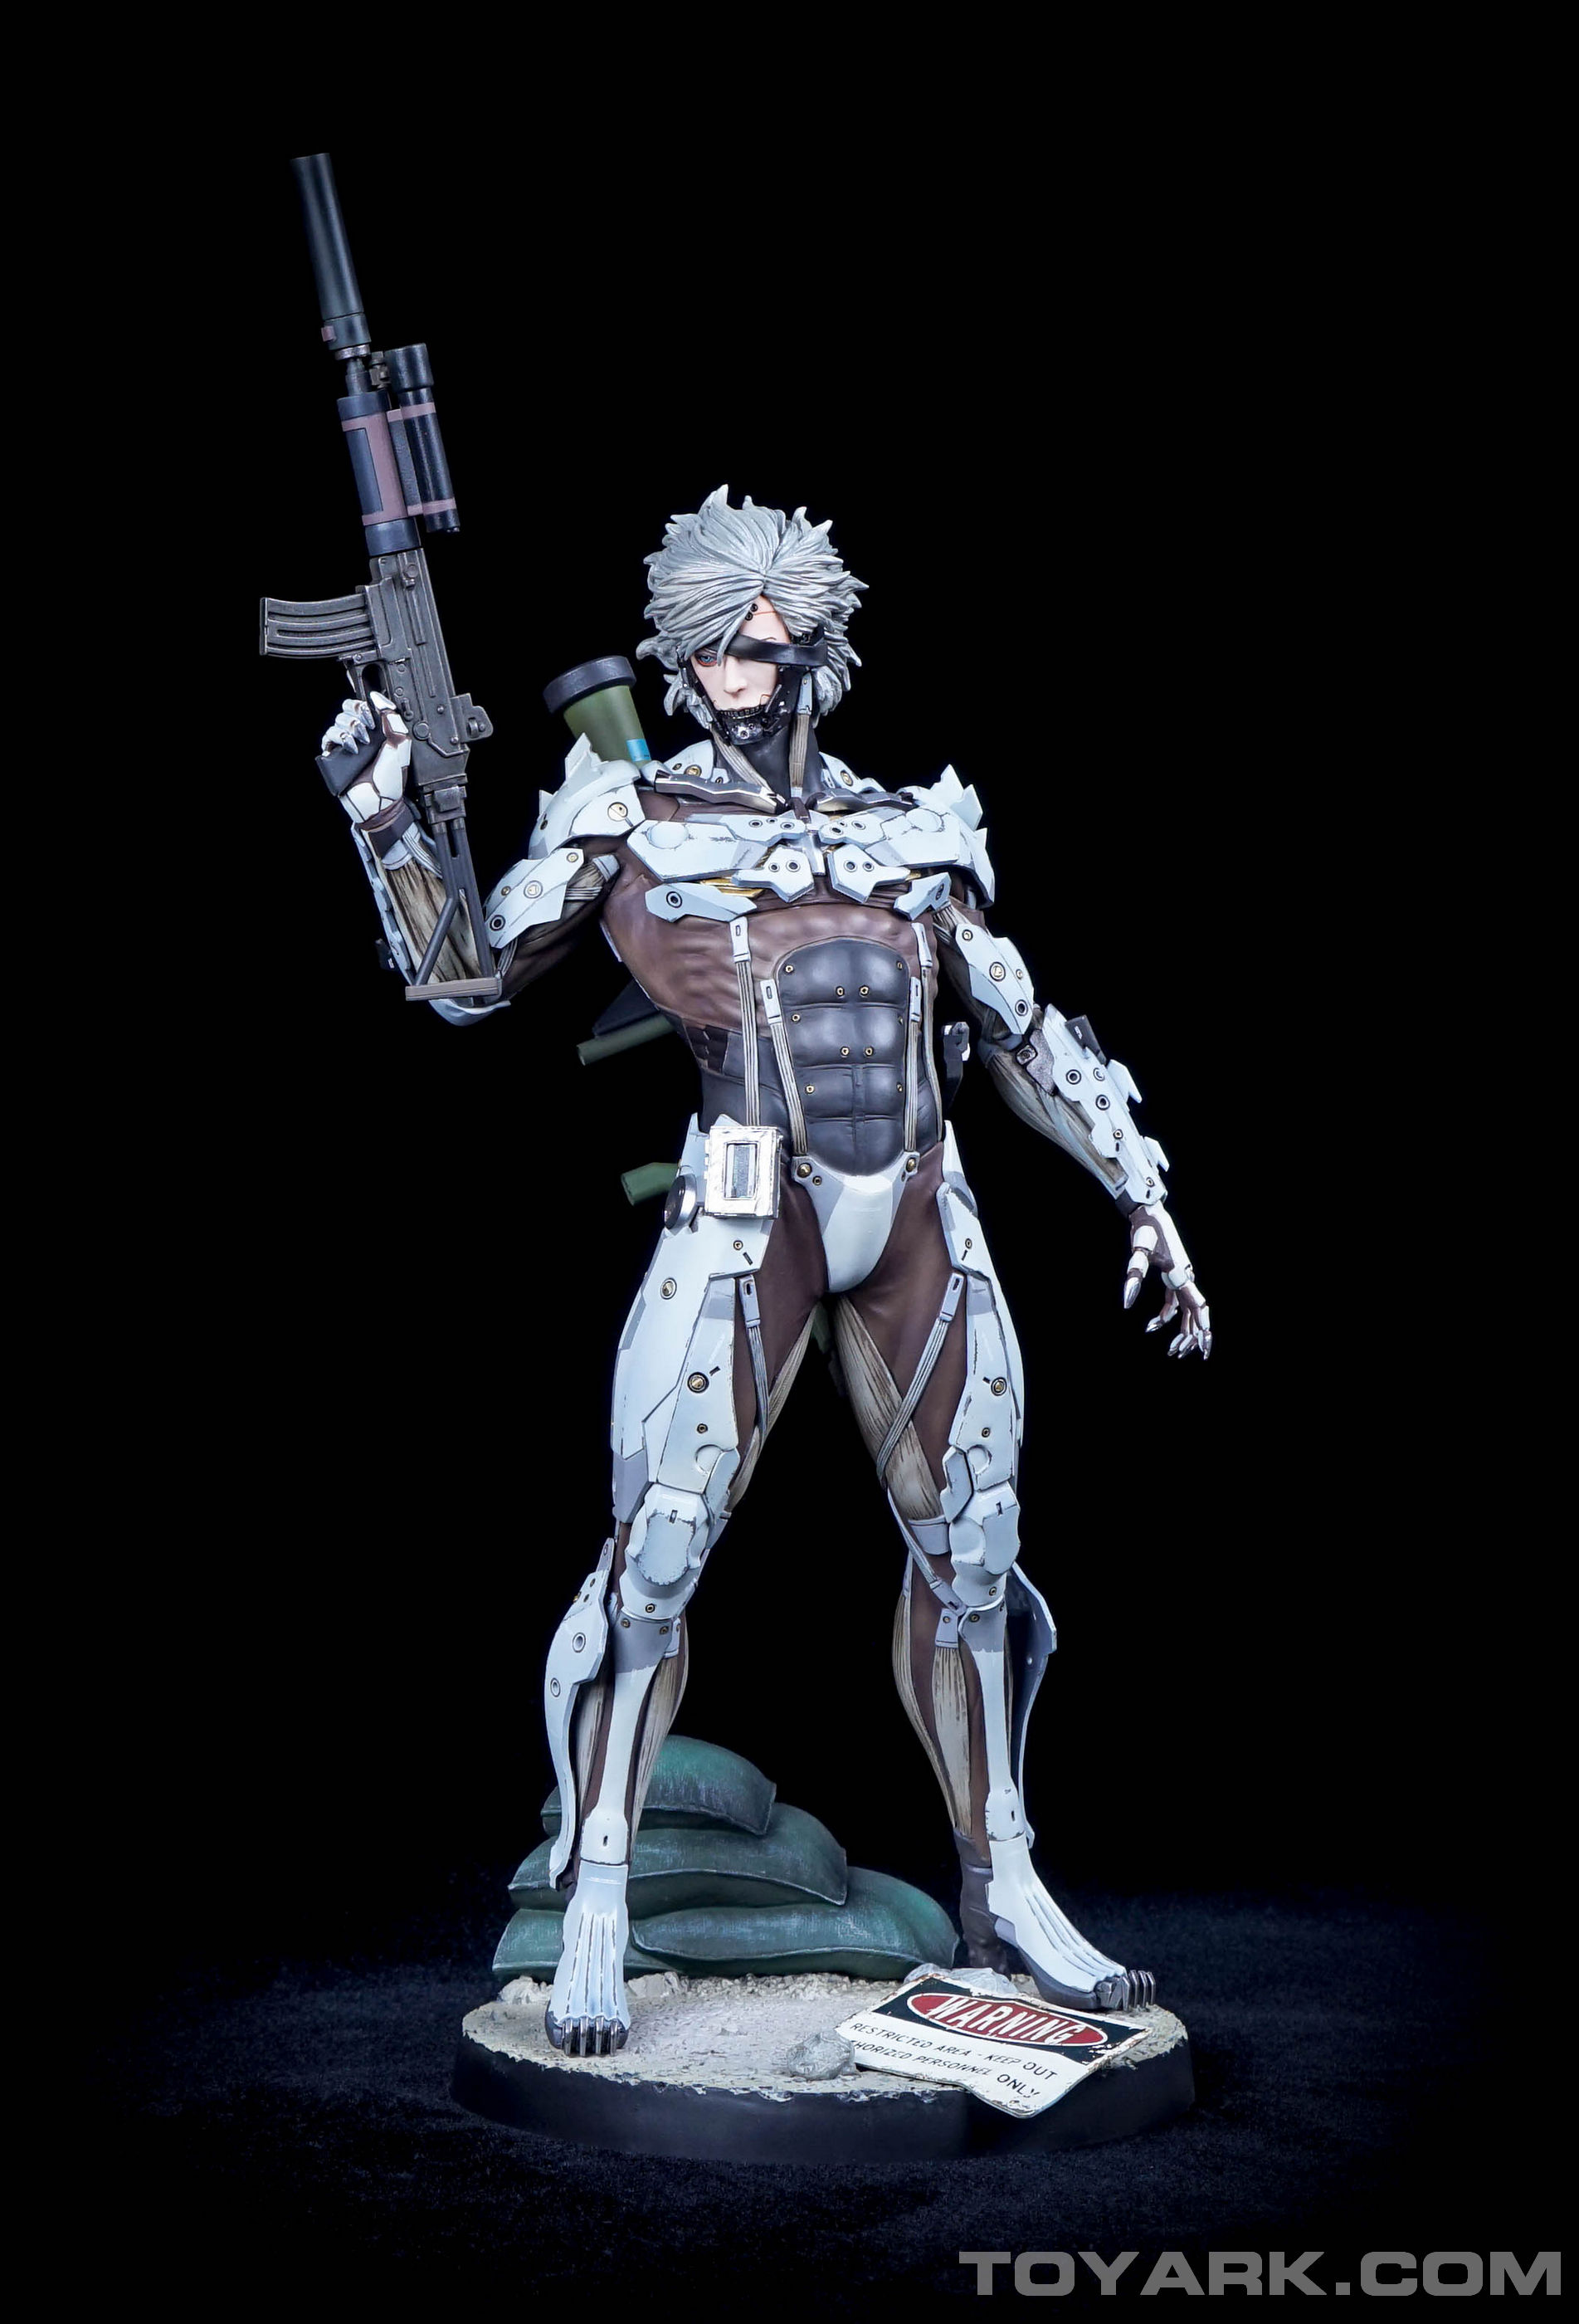 http://news.toyark.com/wp-content/uploads/sites/4/2015/09/MGSV-Raiden-White-Armor-Statue-010.jpg